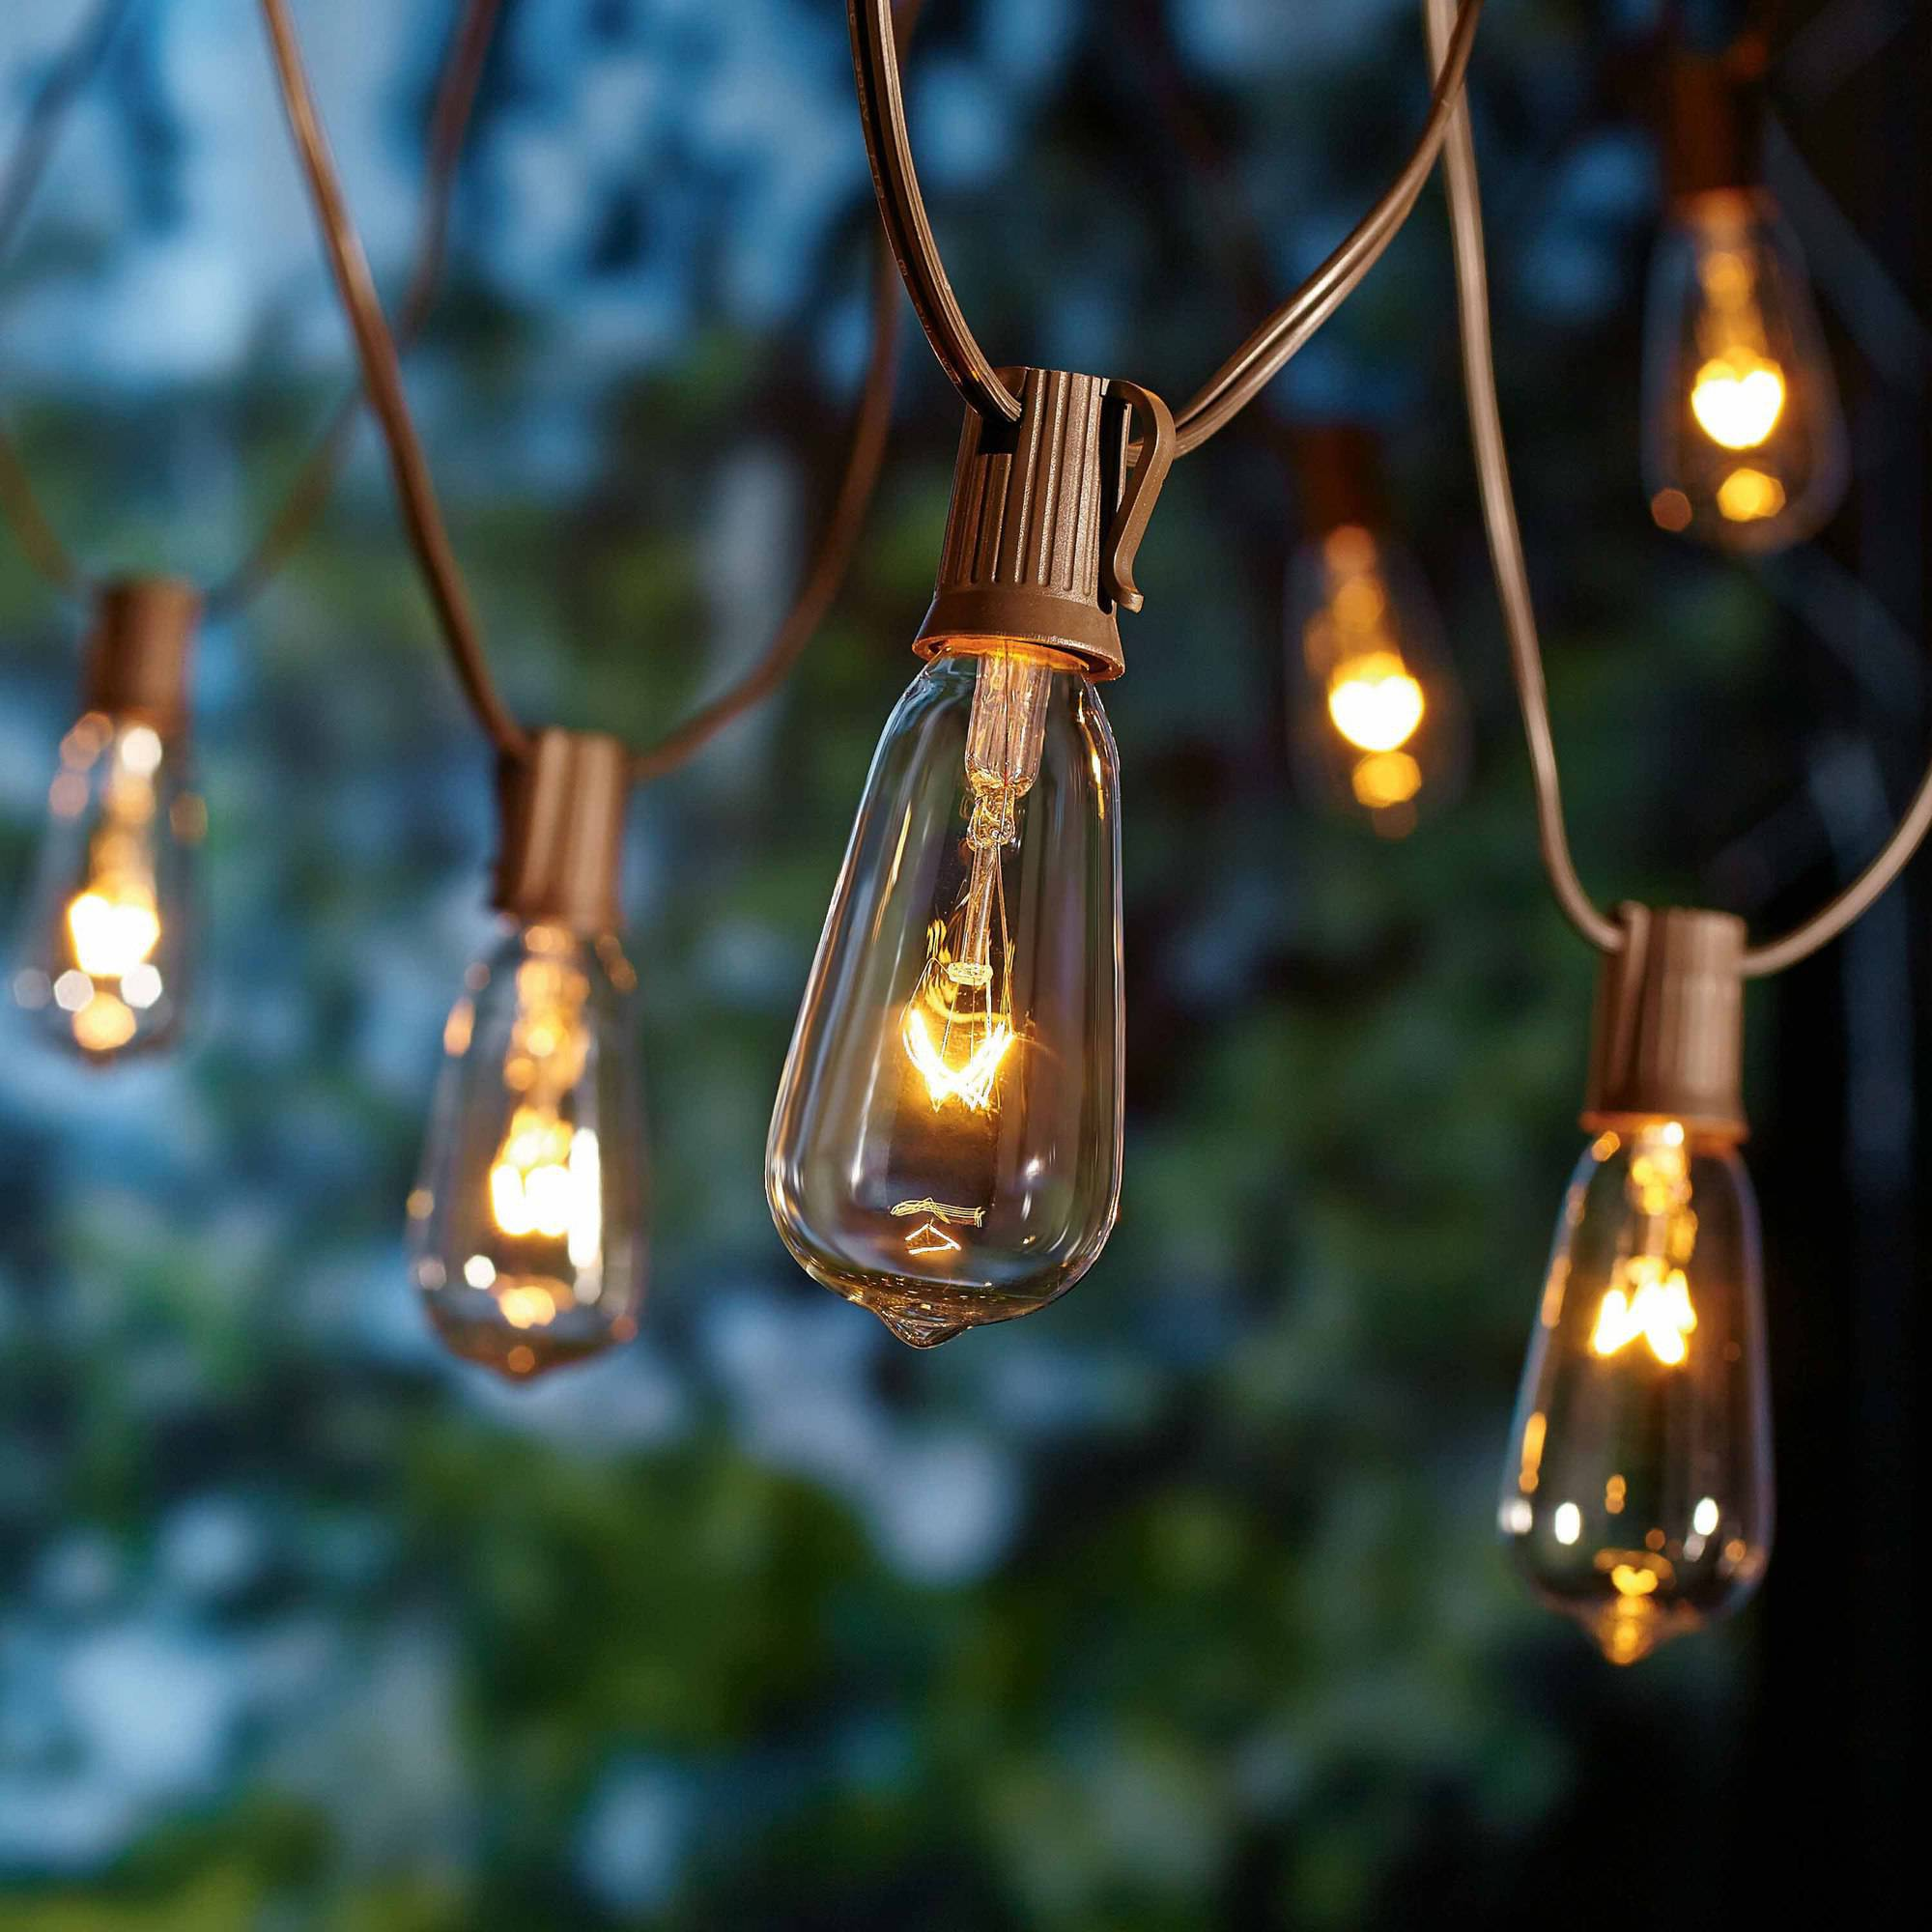 Edison Outdoor String Lights Better homes and gardens outdoor glass edison string lights 10 better homes and gardens outdoor glass edison string lights 10 count walmart workwithnaturefo